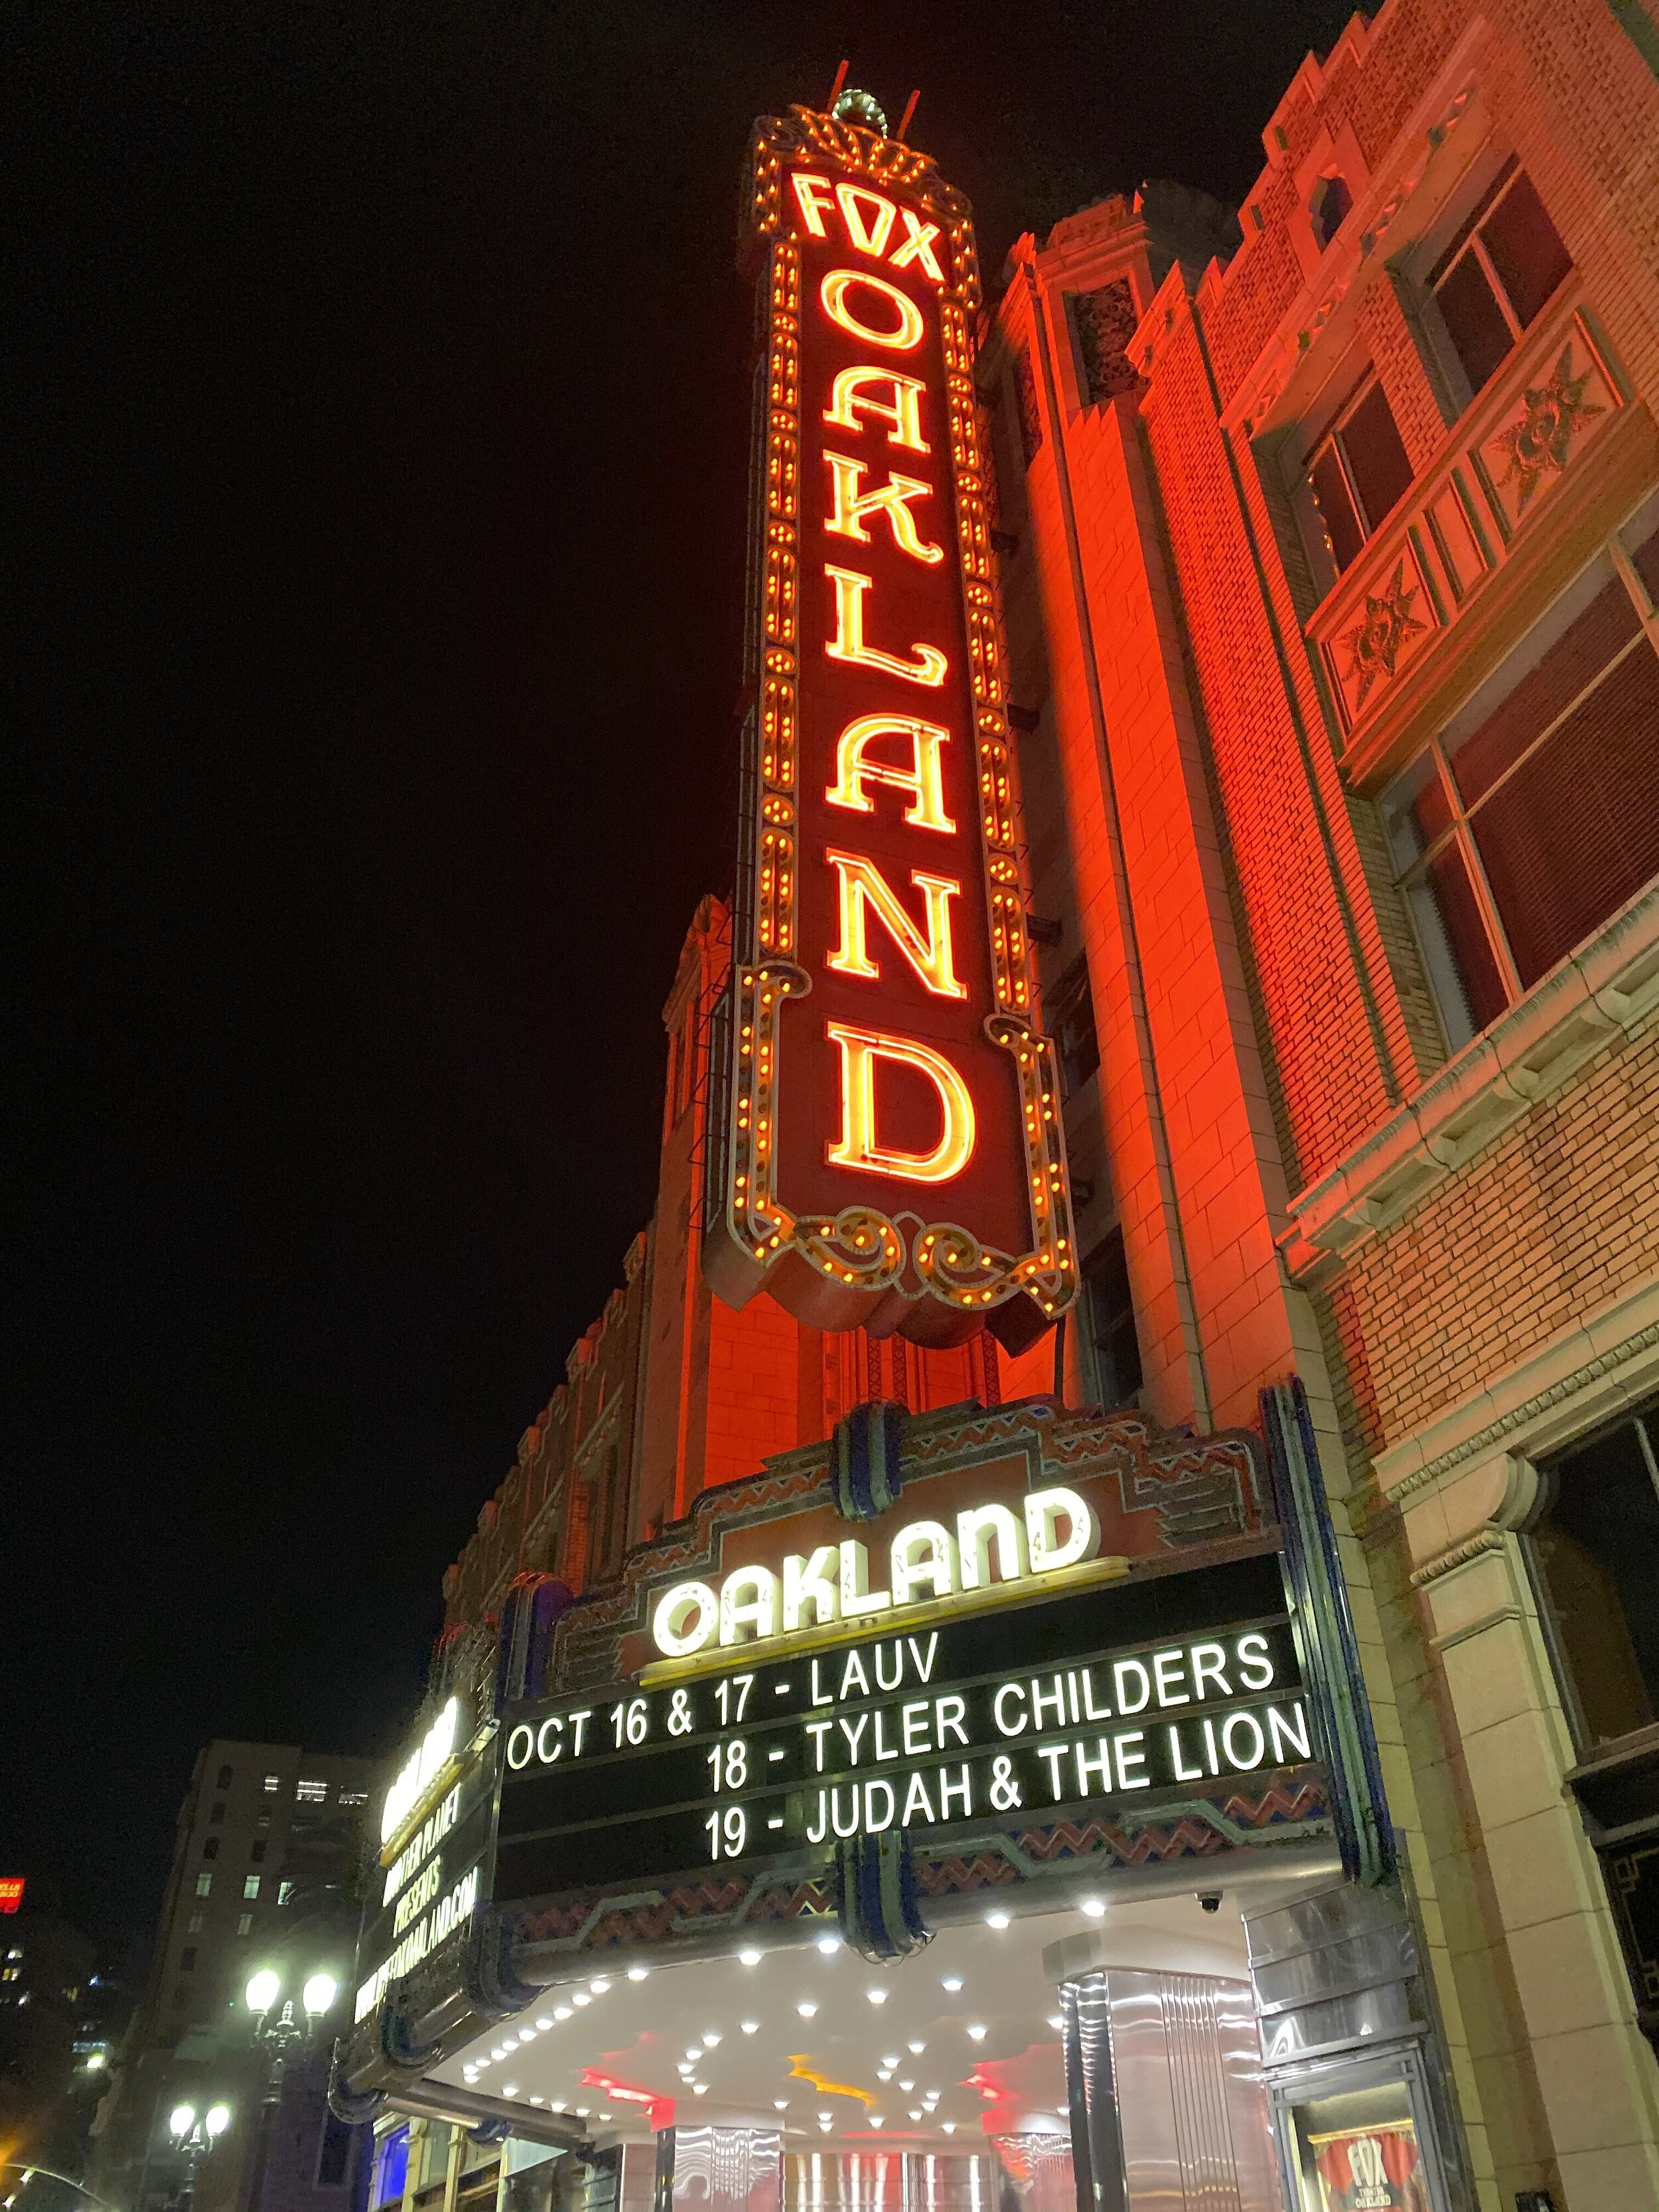 The Fox Theater in Oakland, where we saw Lauv perform.